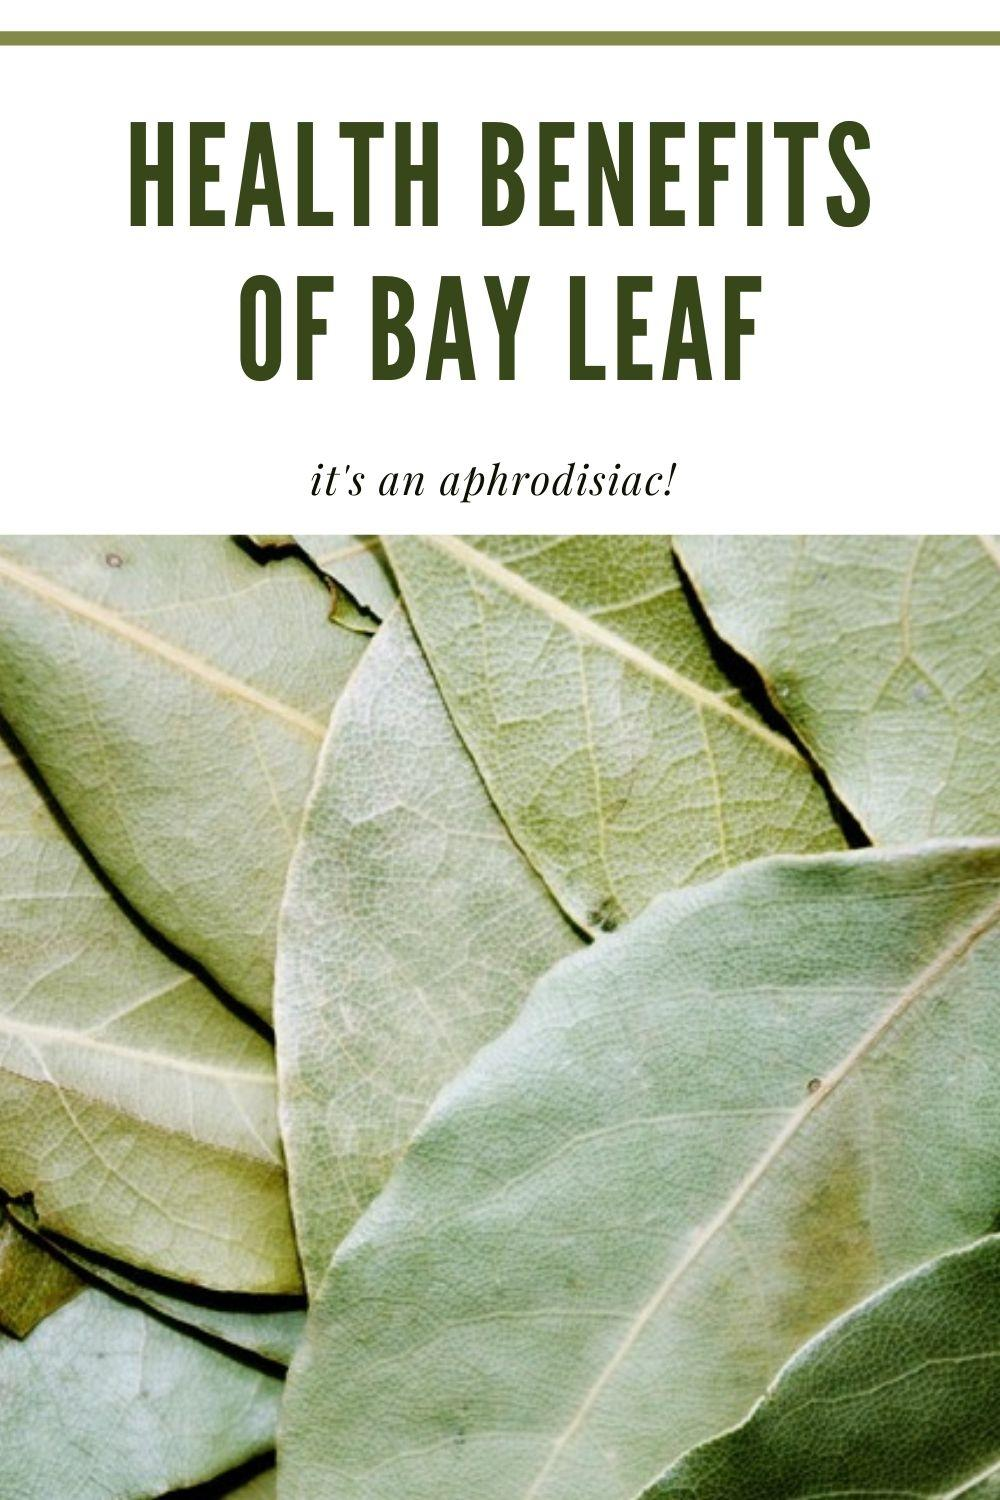 benefits of bay leaf graphic